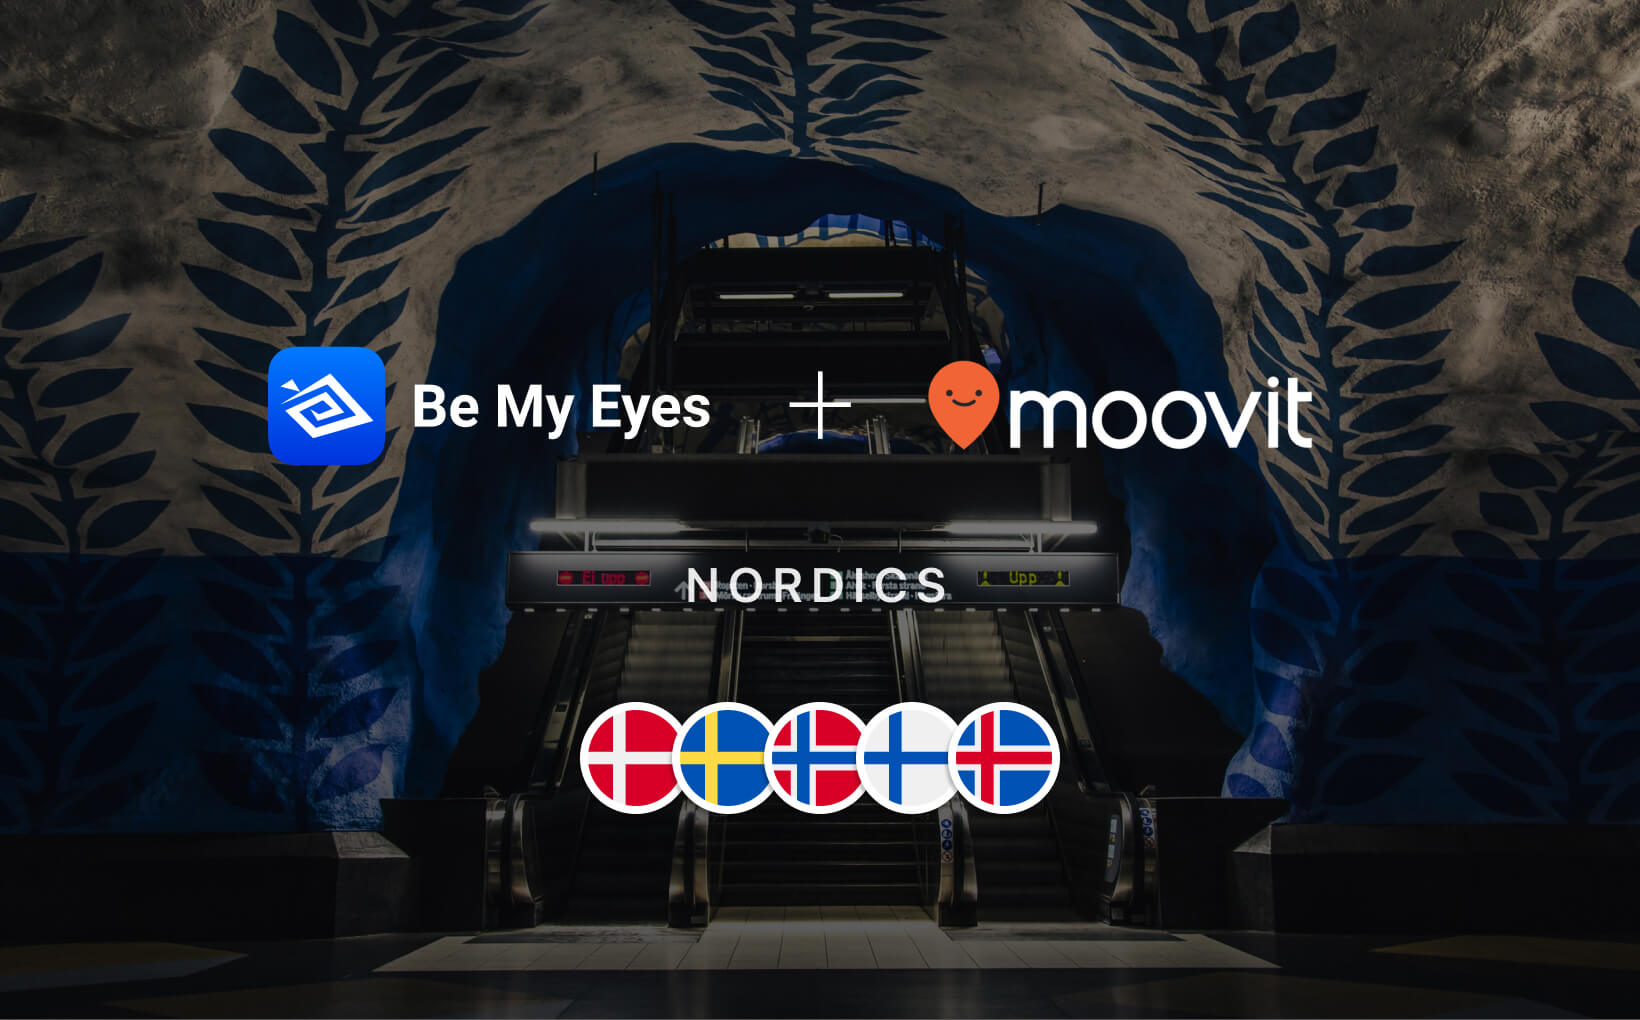 "Picture from T-Centralen Metro Station in Stockholm. Across is written ""Nordics"" along with the flag icons of Denmark, Sweden, Norway, Finland and Iceland, as well as ""Be My Eyes + Moovit"" along with the two logos of the companies."